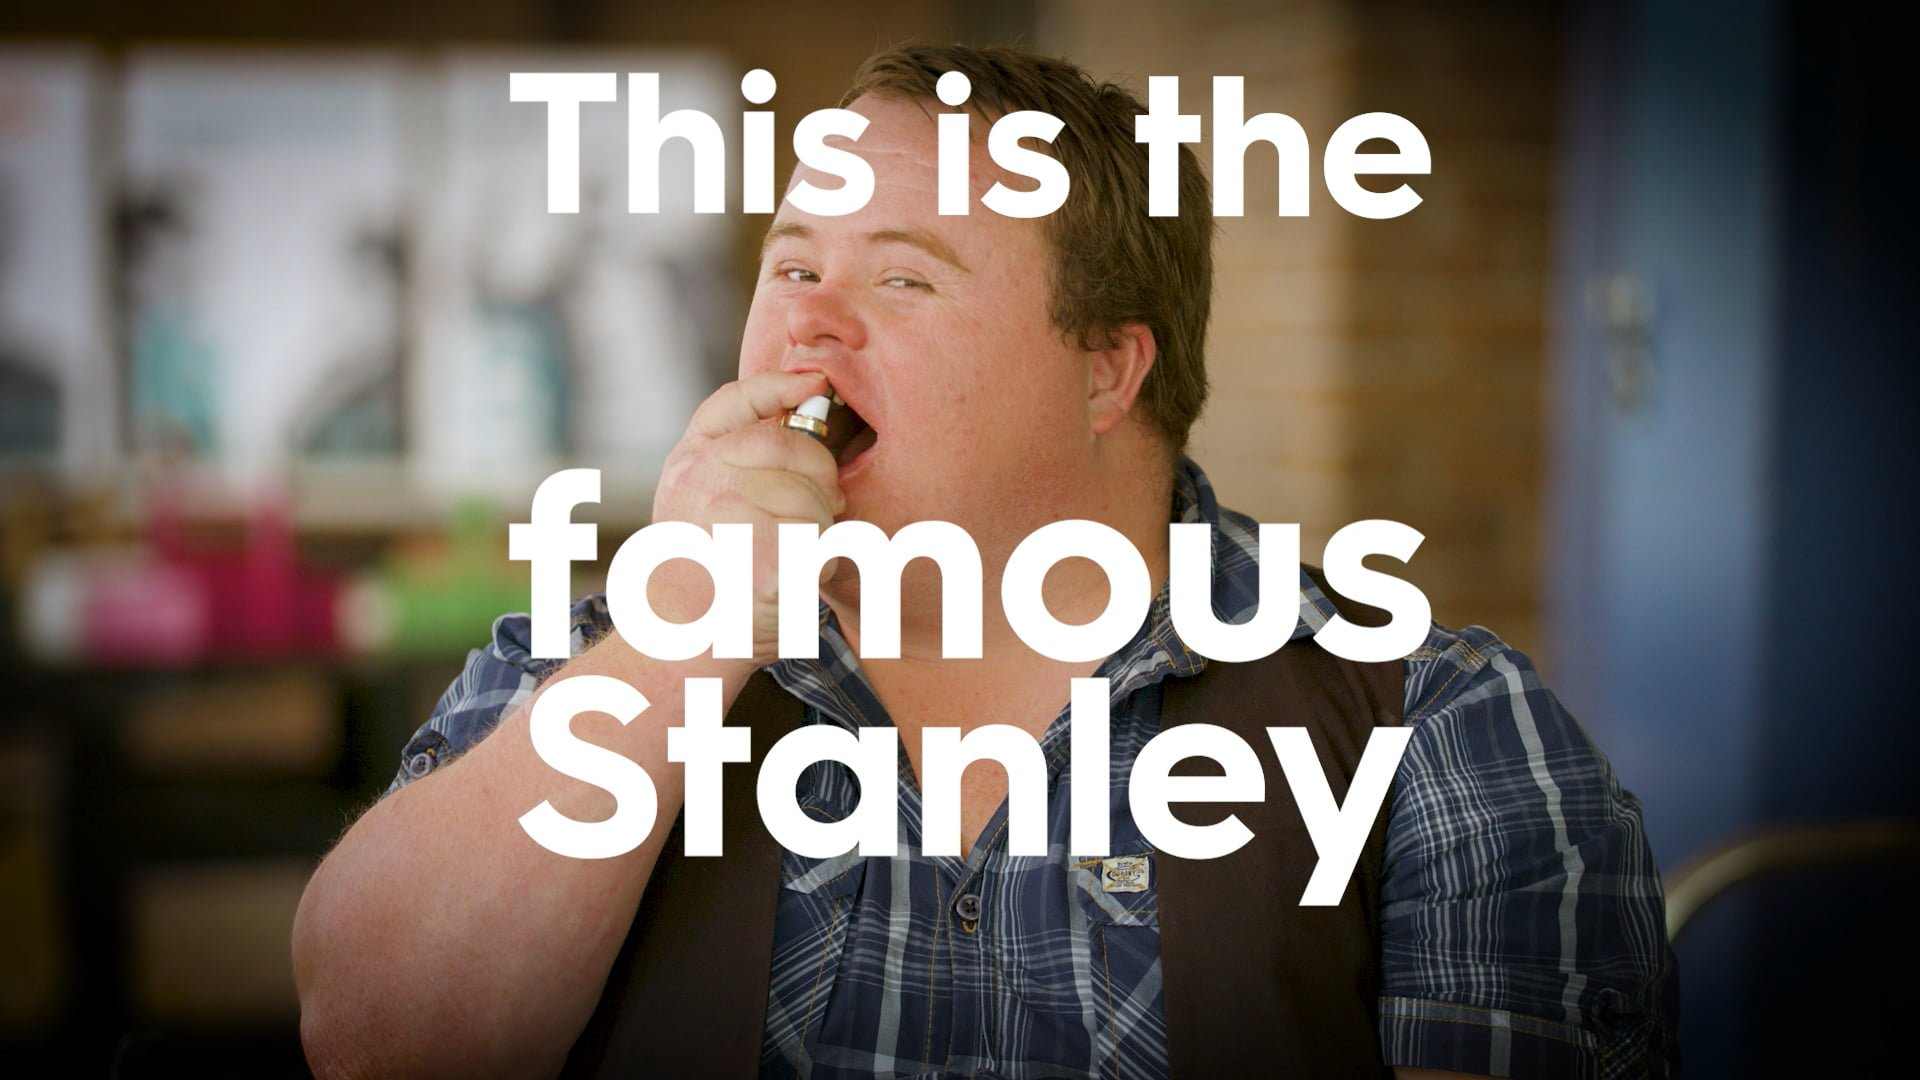 Stanley using a breath freshener with the words 'This is the famous Stanley' written over the top